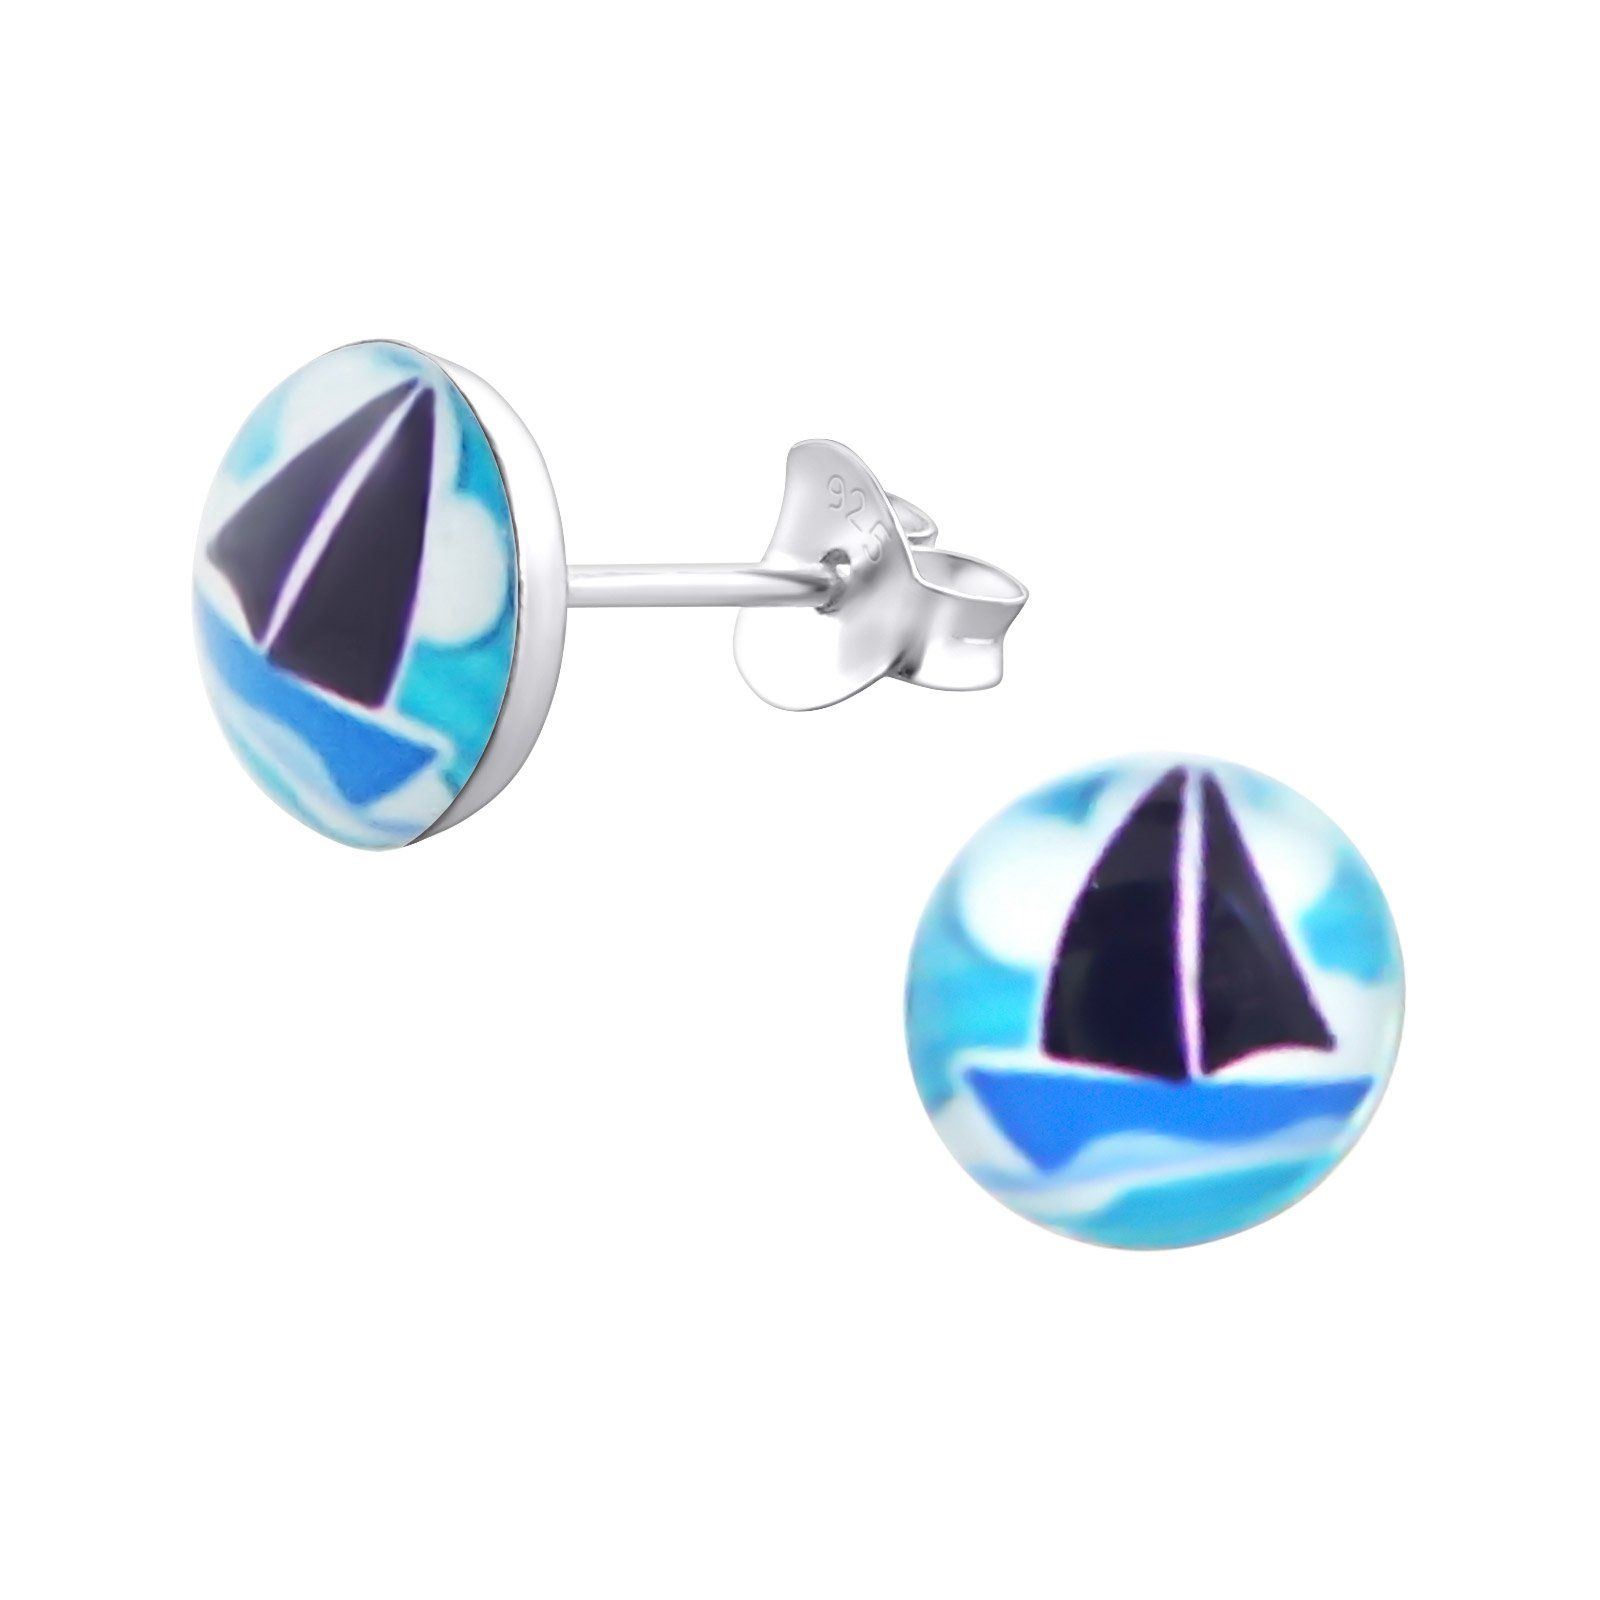 Hypoallergenic Sail Boat Stud Earrings for Girls (Nickel Free and Safe for Sensitive Ears)